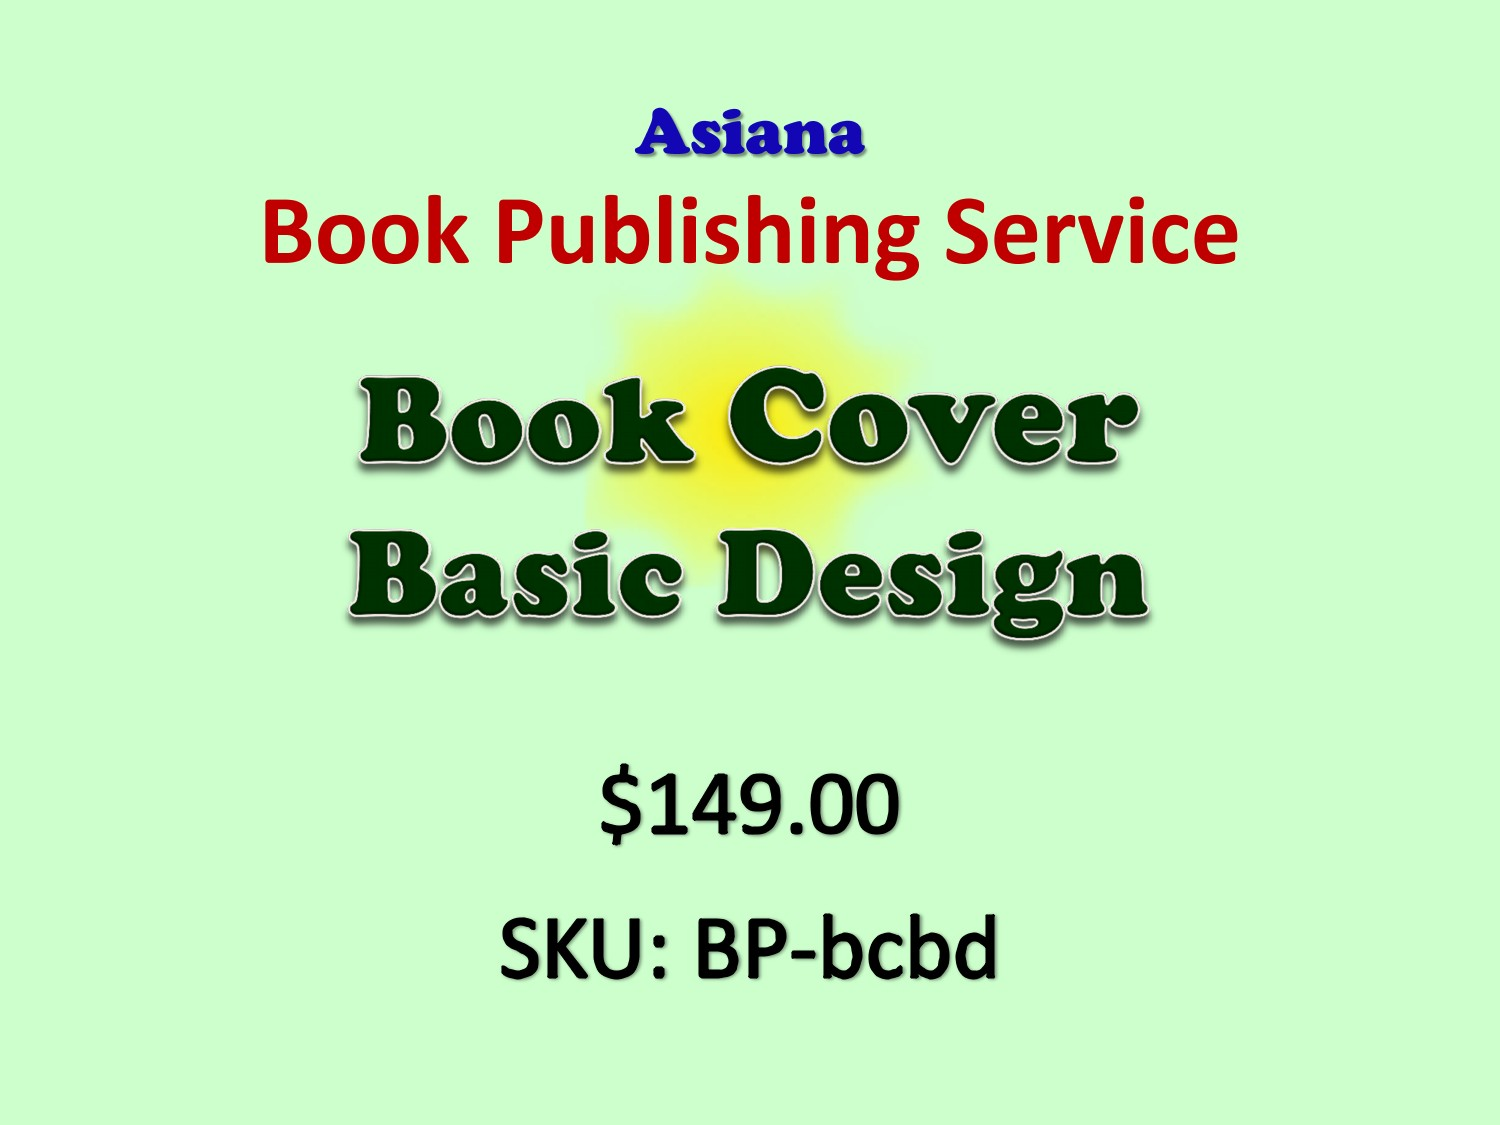 Book Cover Design Basics : Book cover basic design asiana publishing llc